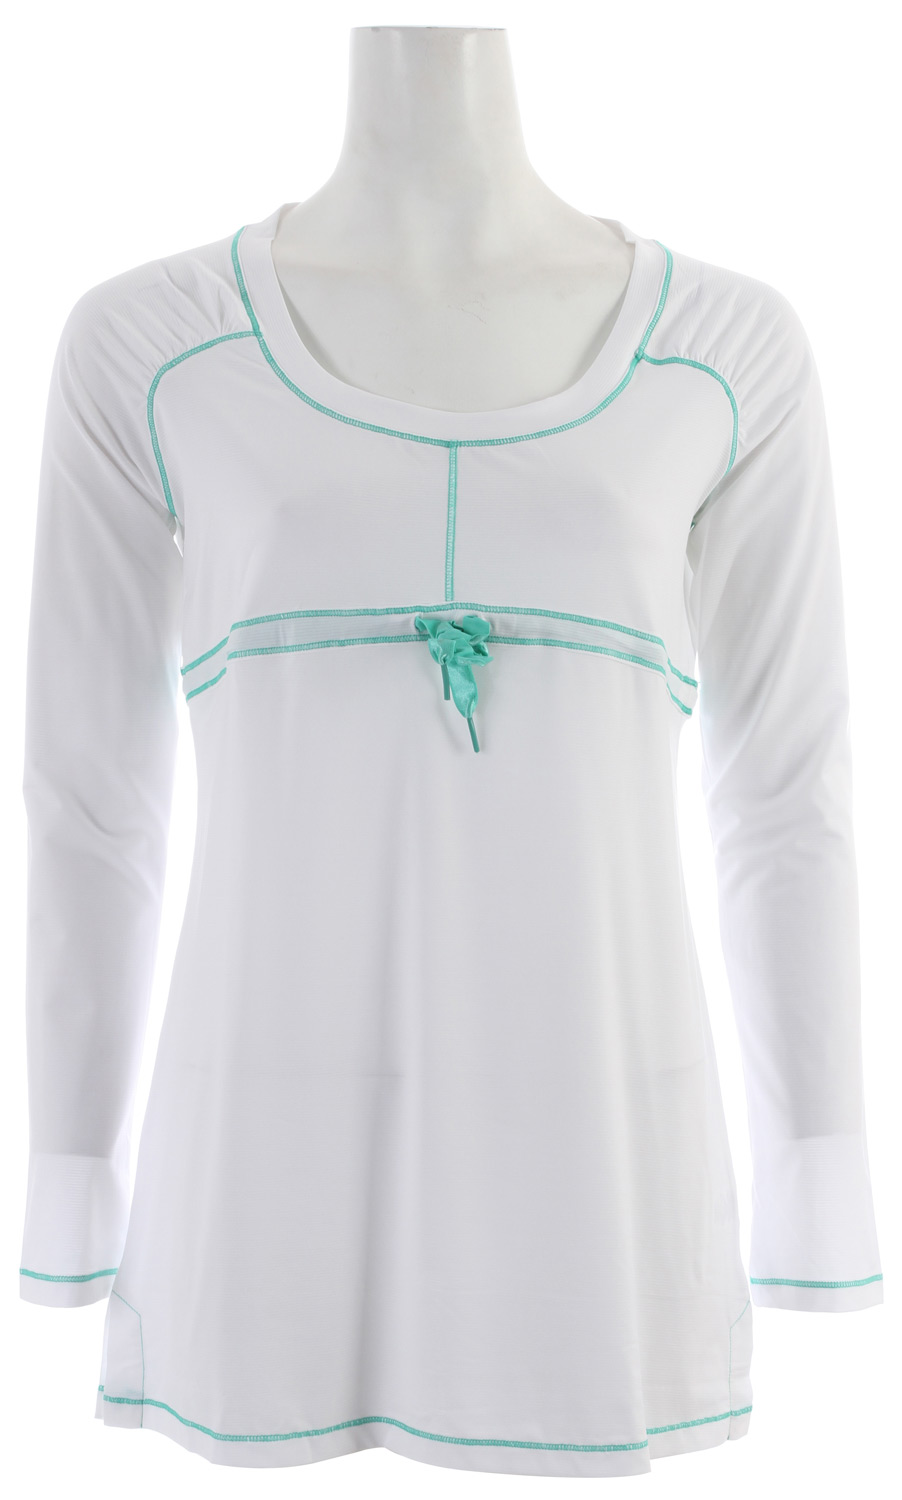 Prana Felicity Top White - $38.95